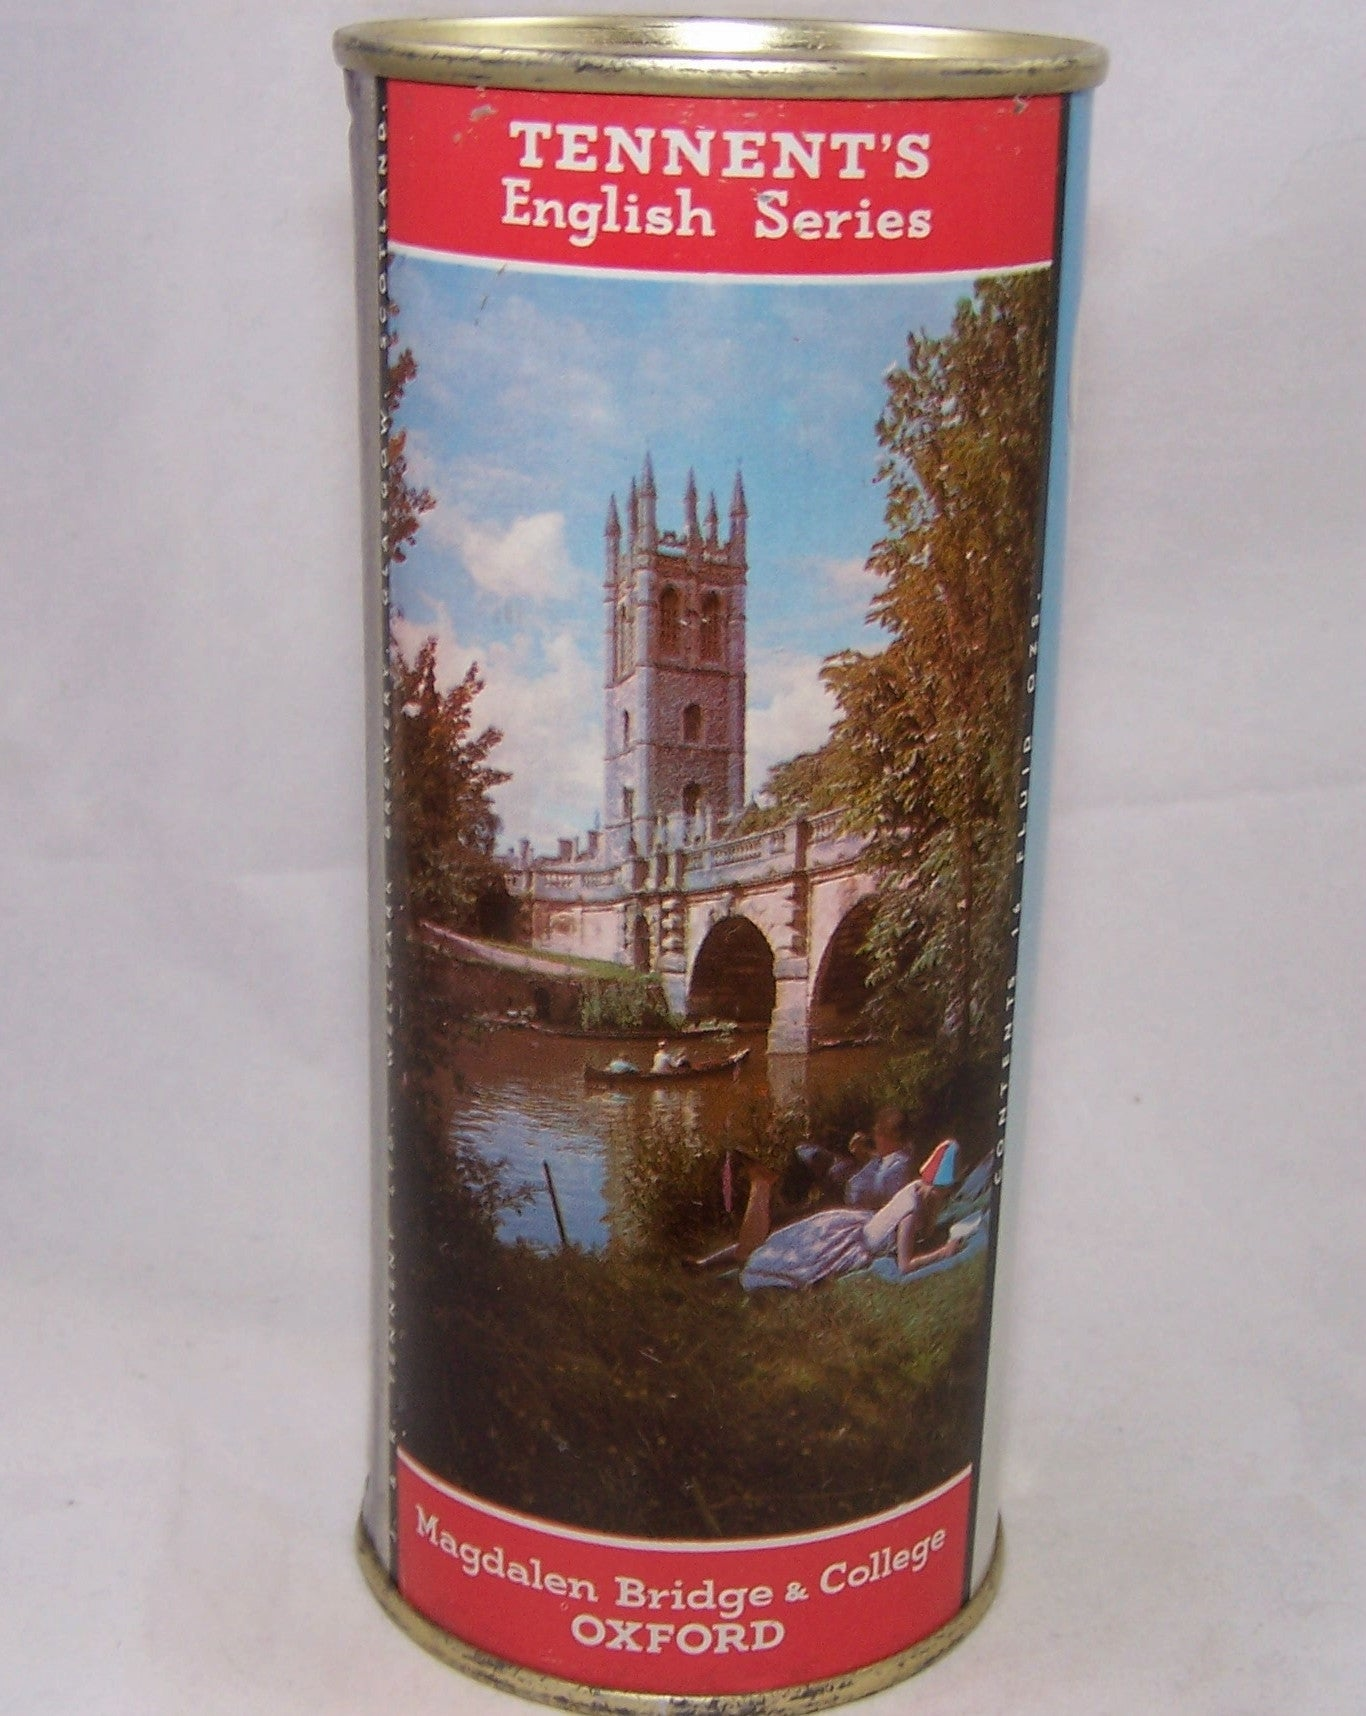 Tennent's English Series, (Magdalen Bridge & College OXFORD) Grade A1+ Sold on 10/21 /18